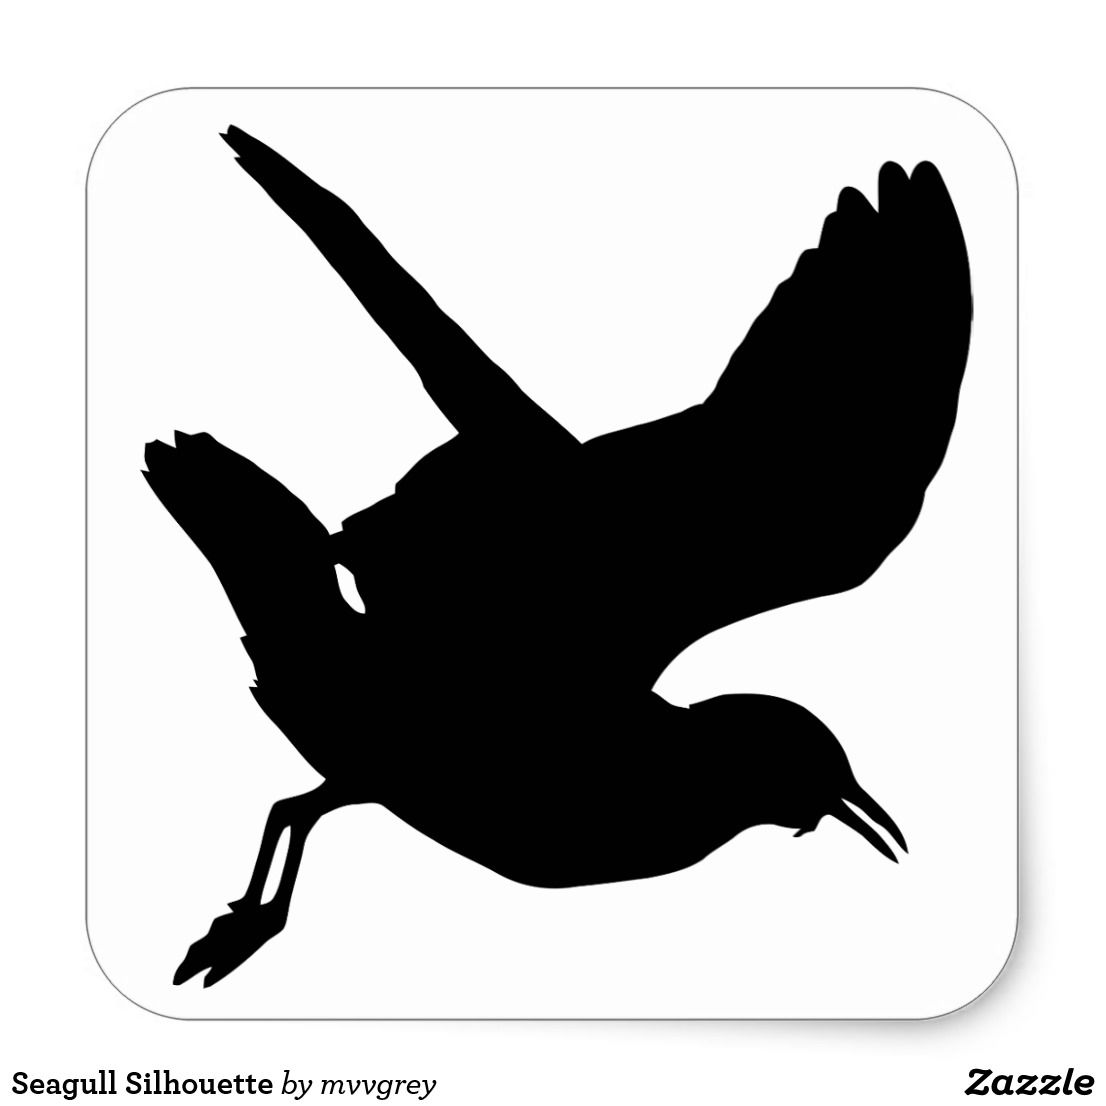 seagull silhouette limited edition exclusive seagull silhouette seagull seagull silhouette